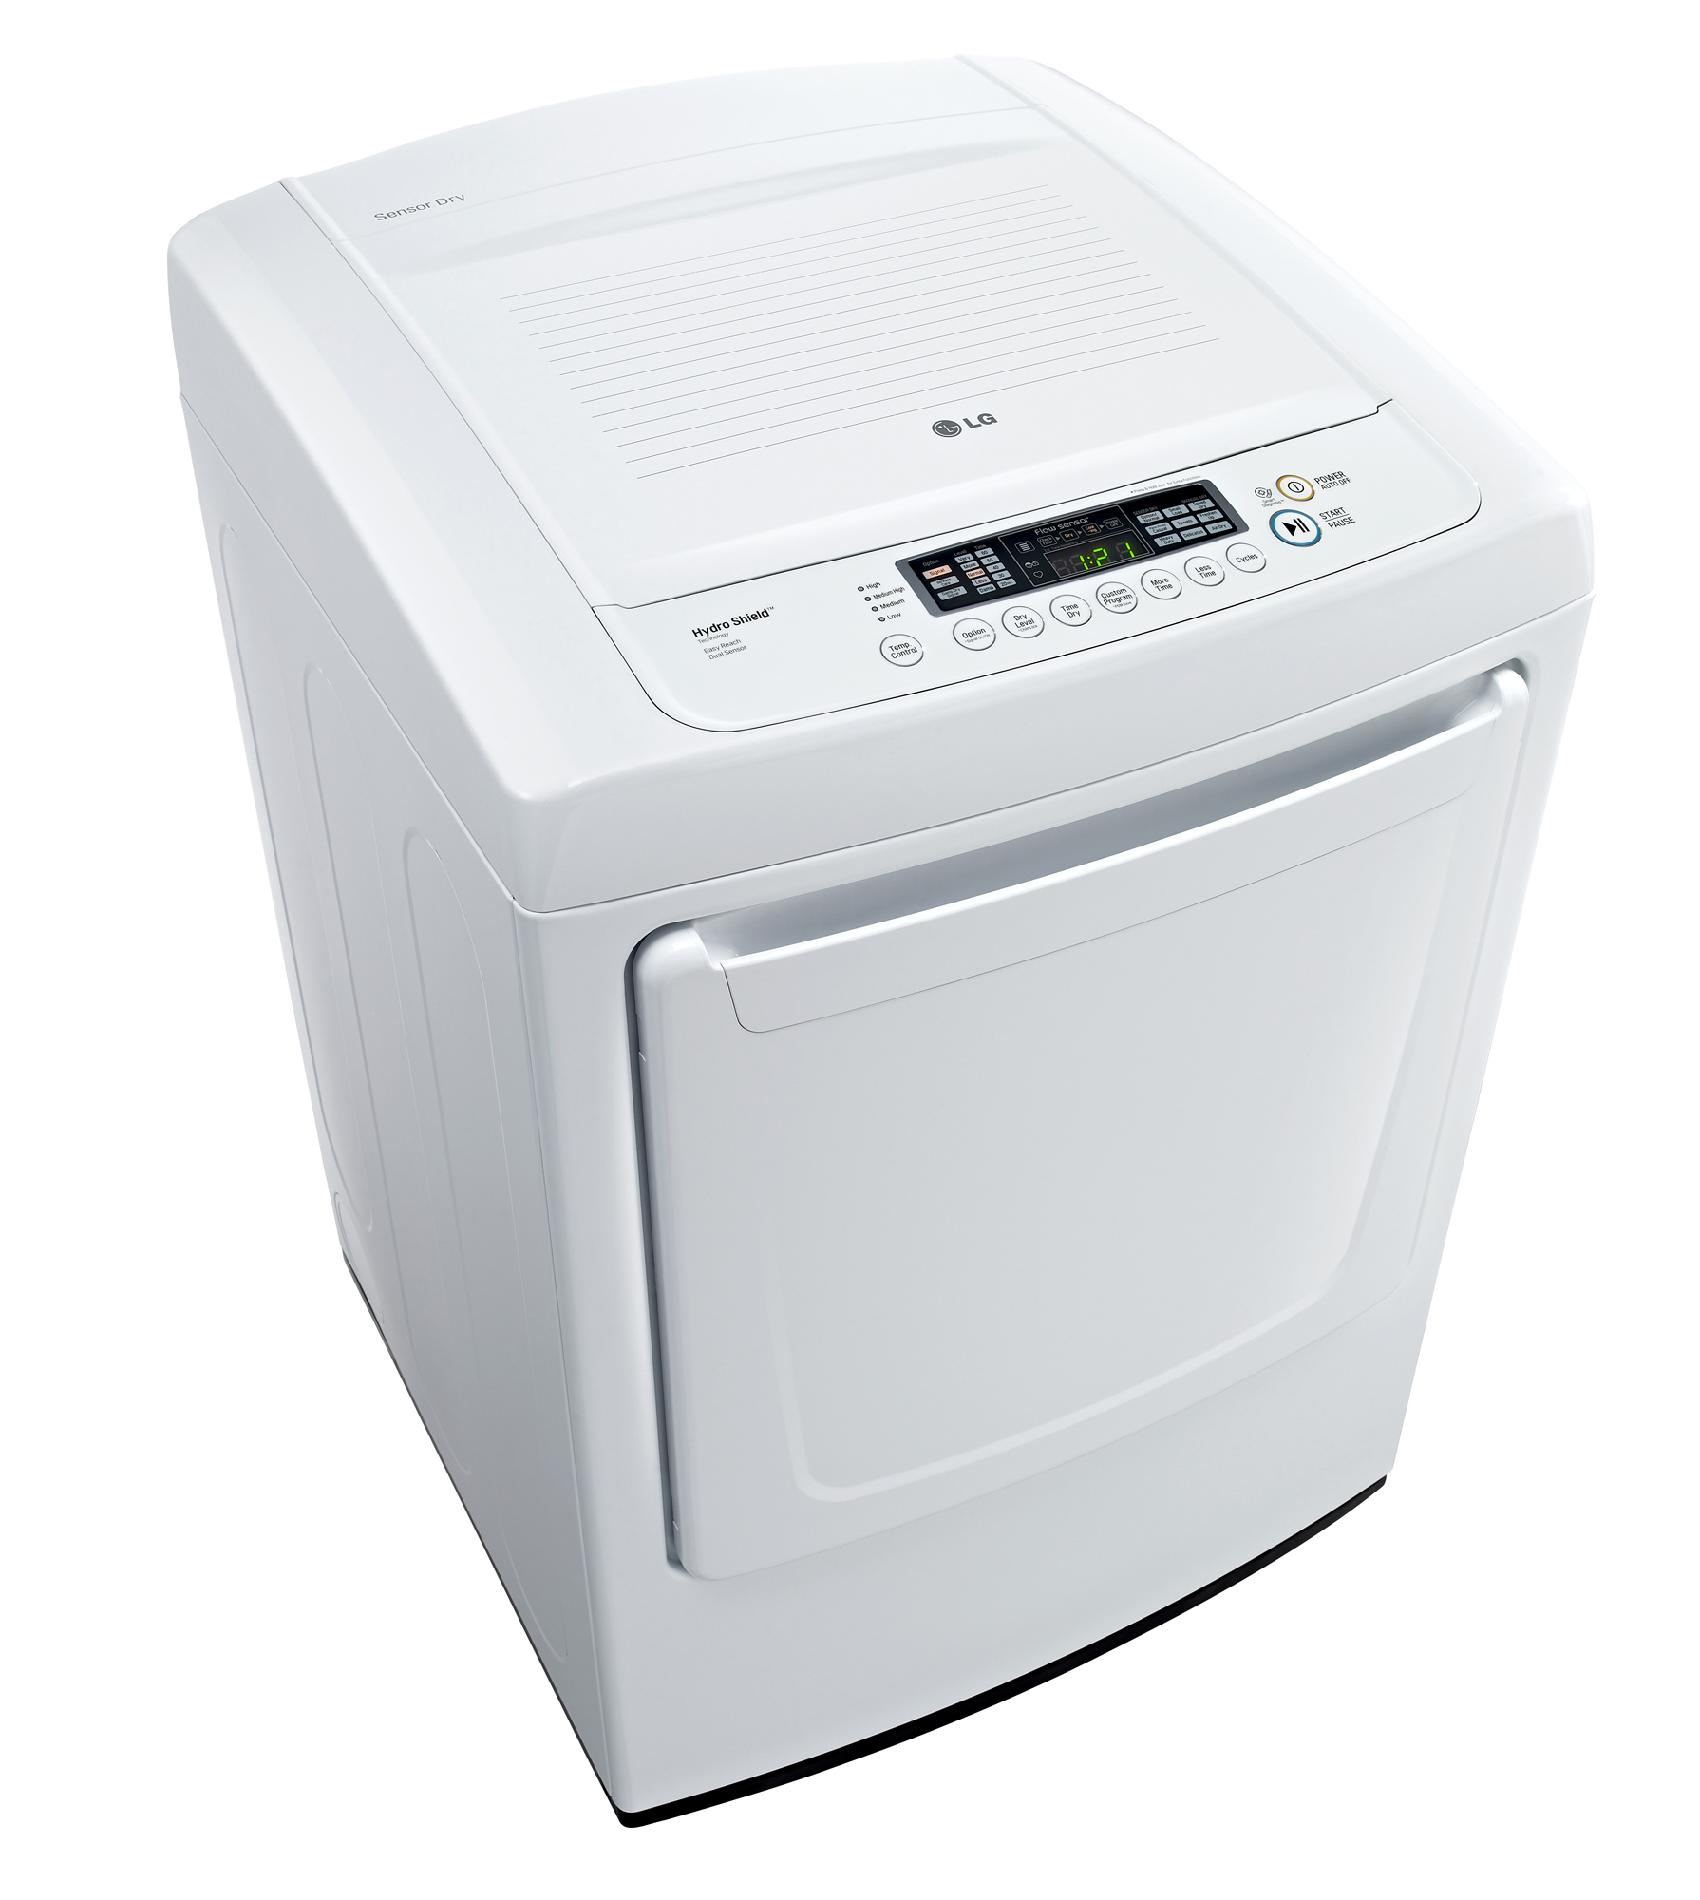 LG DLE1001W 7.3 cu. ft. Ultra-Large Capacity Front Control Electric Dryer w/ Sensor Dry - White